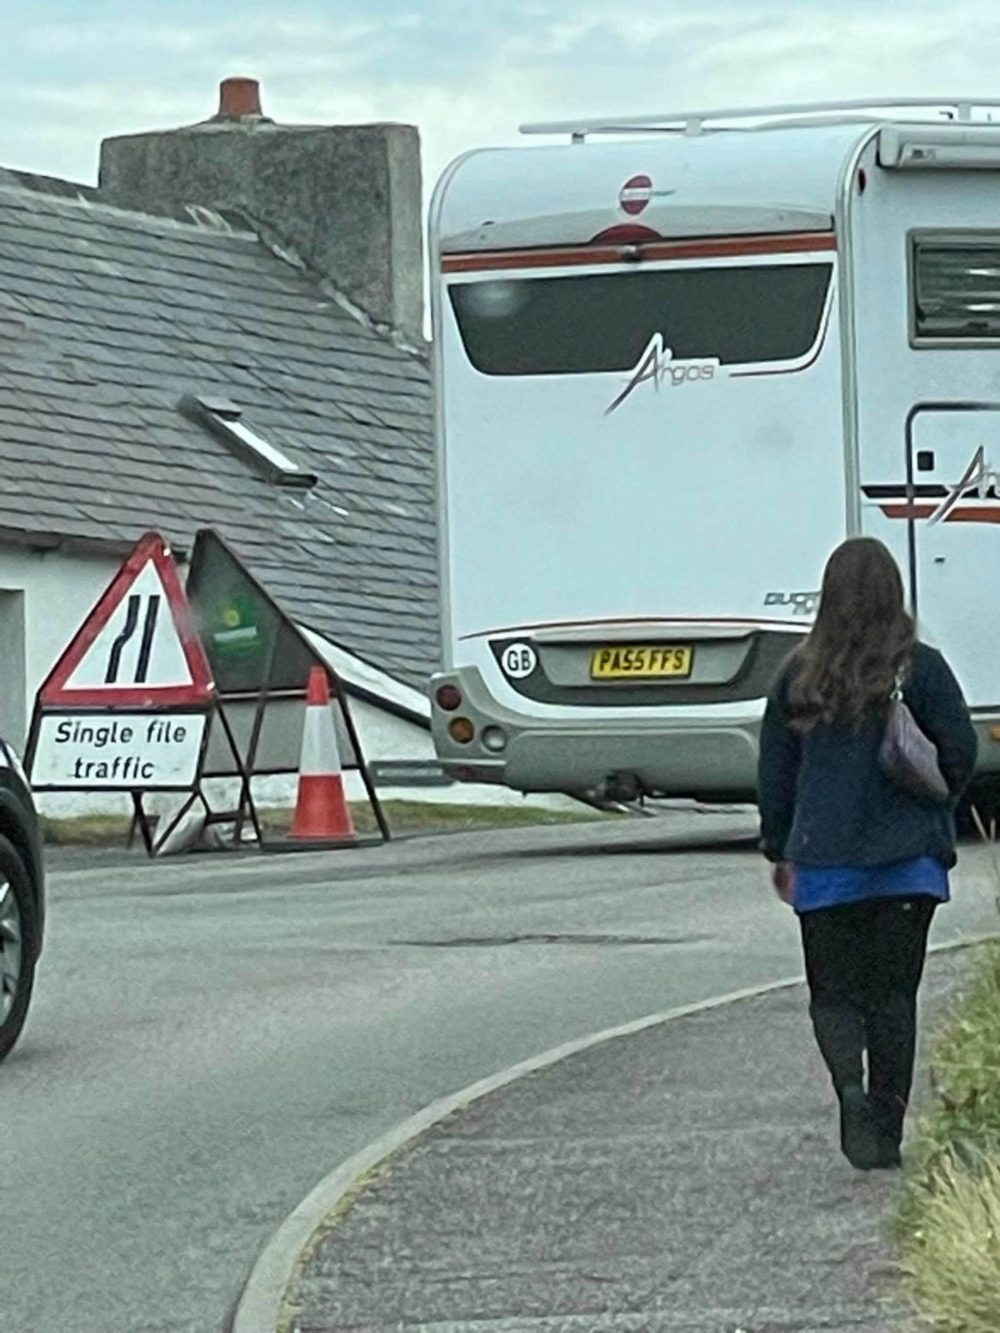 The campervan with the funny license plate   Scottish News